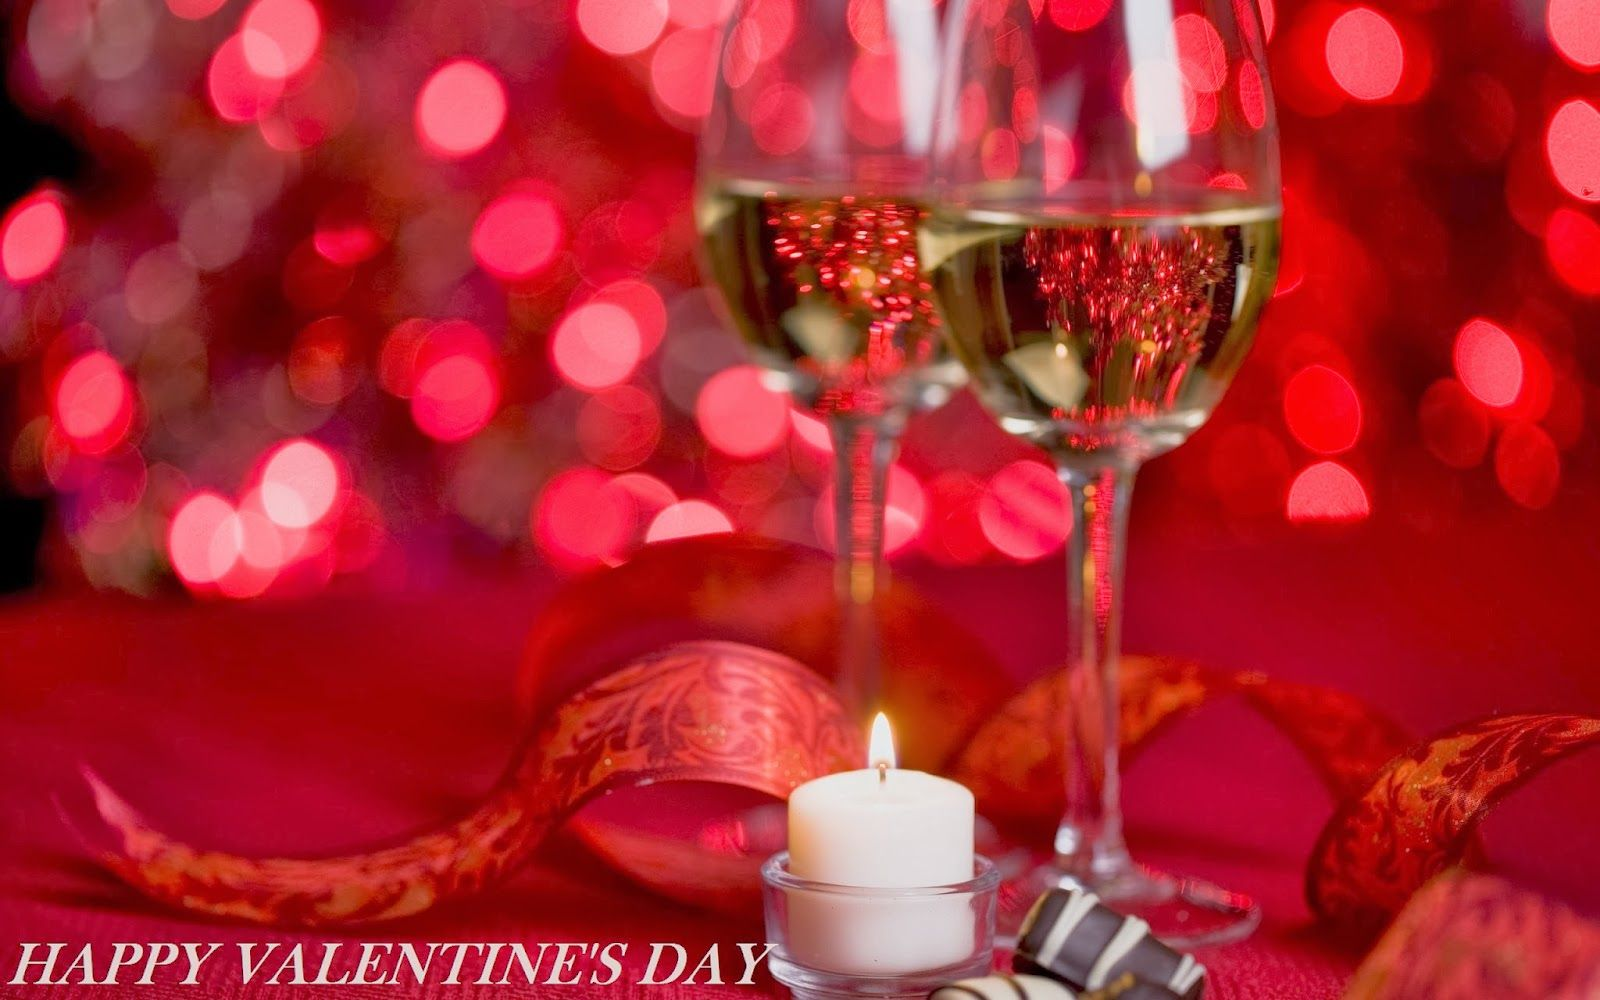 Happy-Valentines-Day-2014.-HD-Wallpaper-and-pics.-party ...